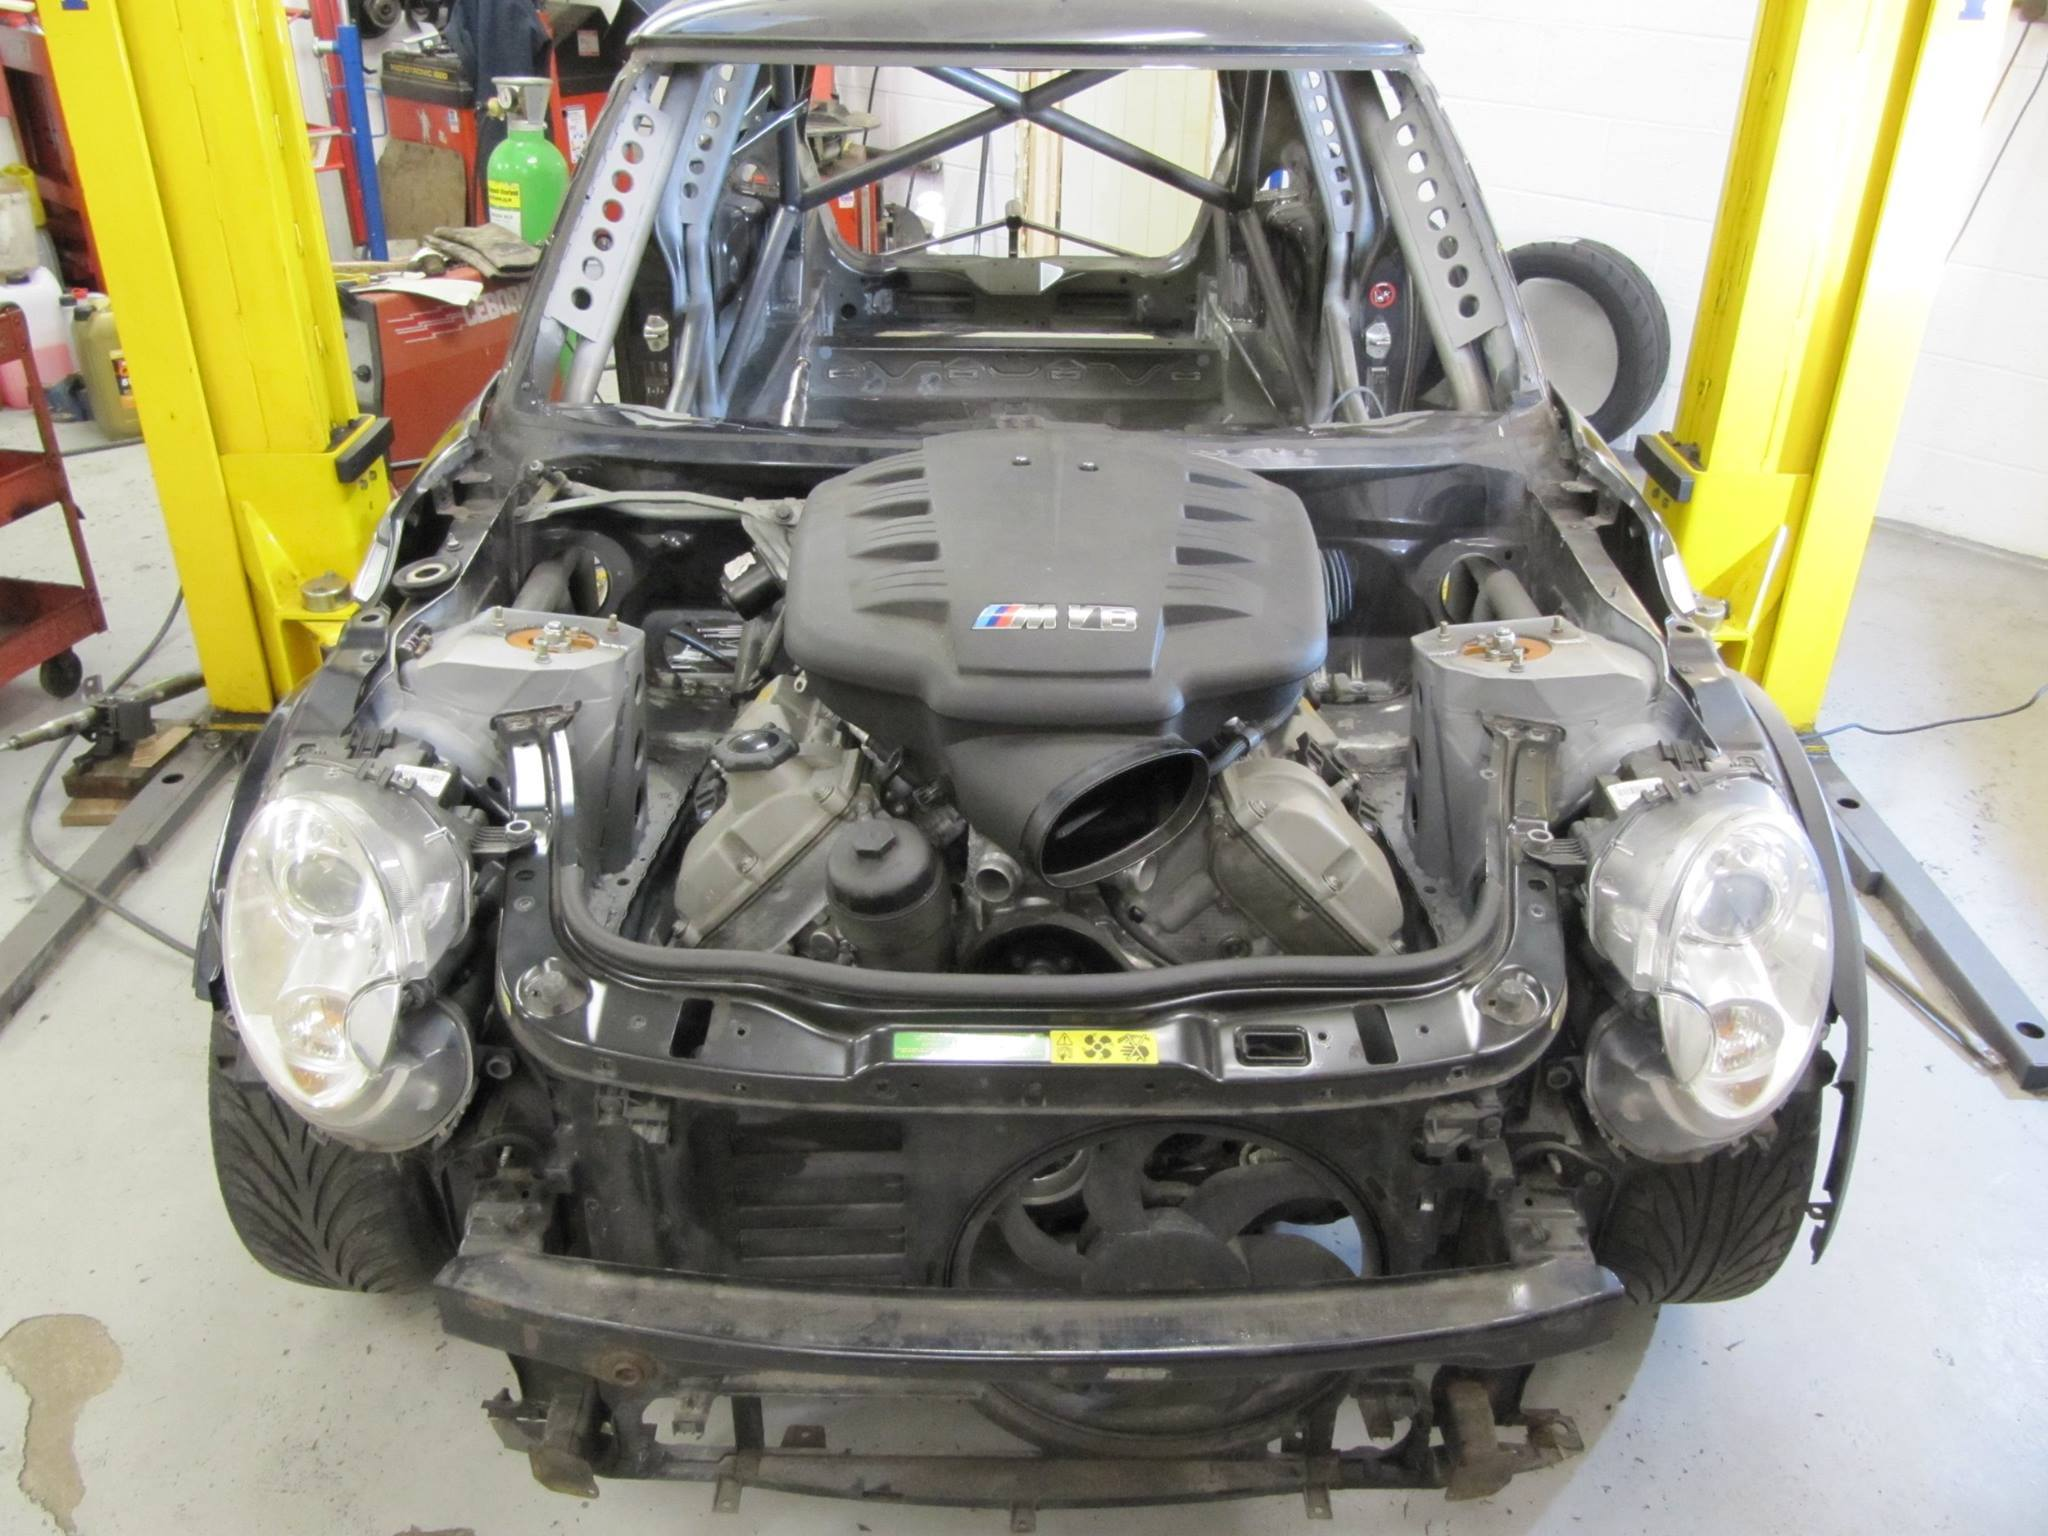 Rwd Mini With A Bmw V8 Engine Swap Depot